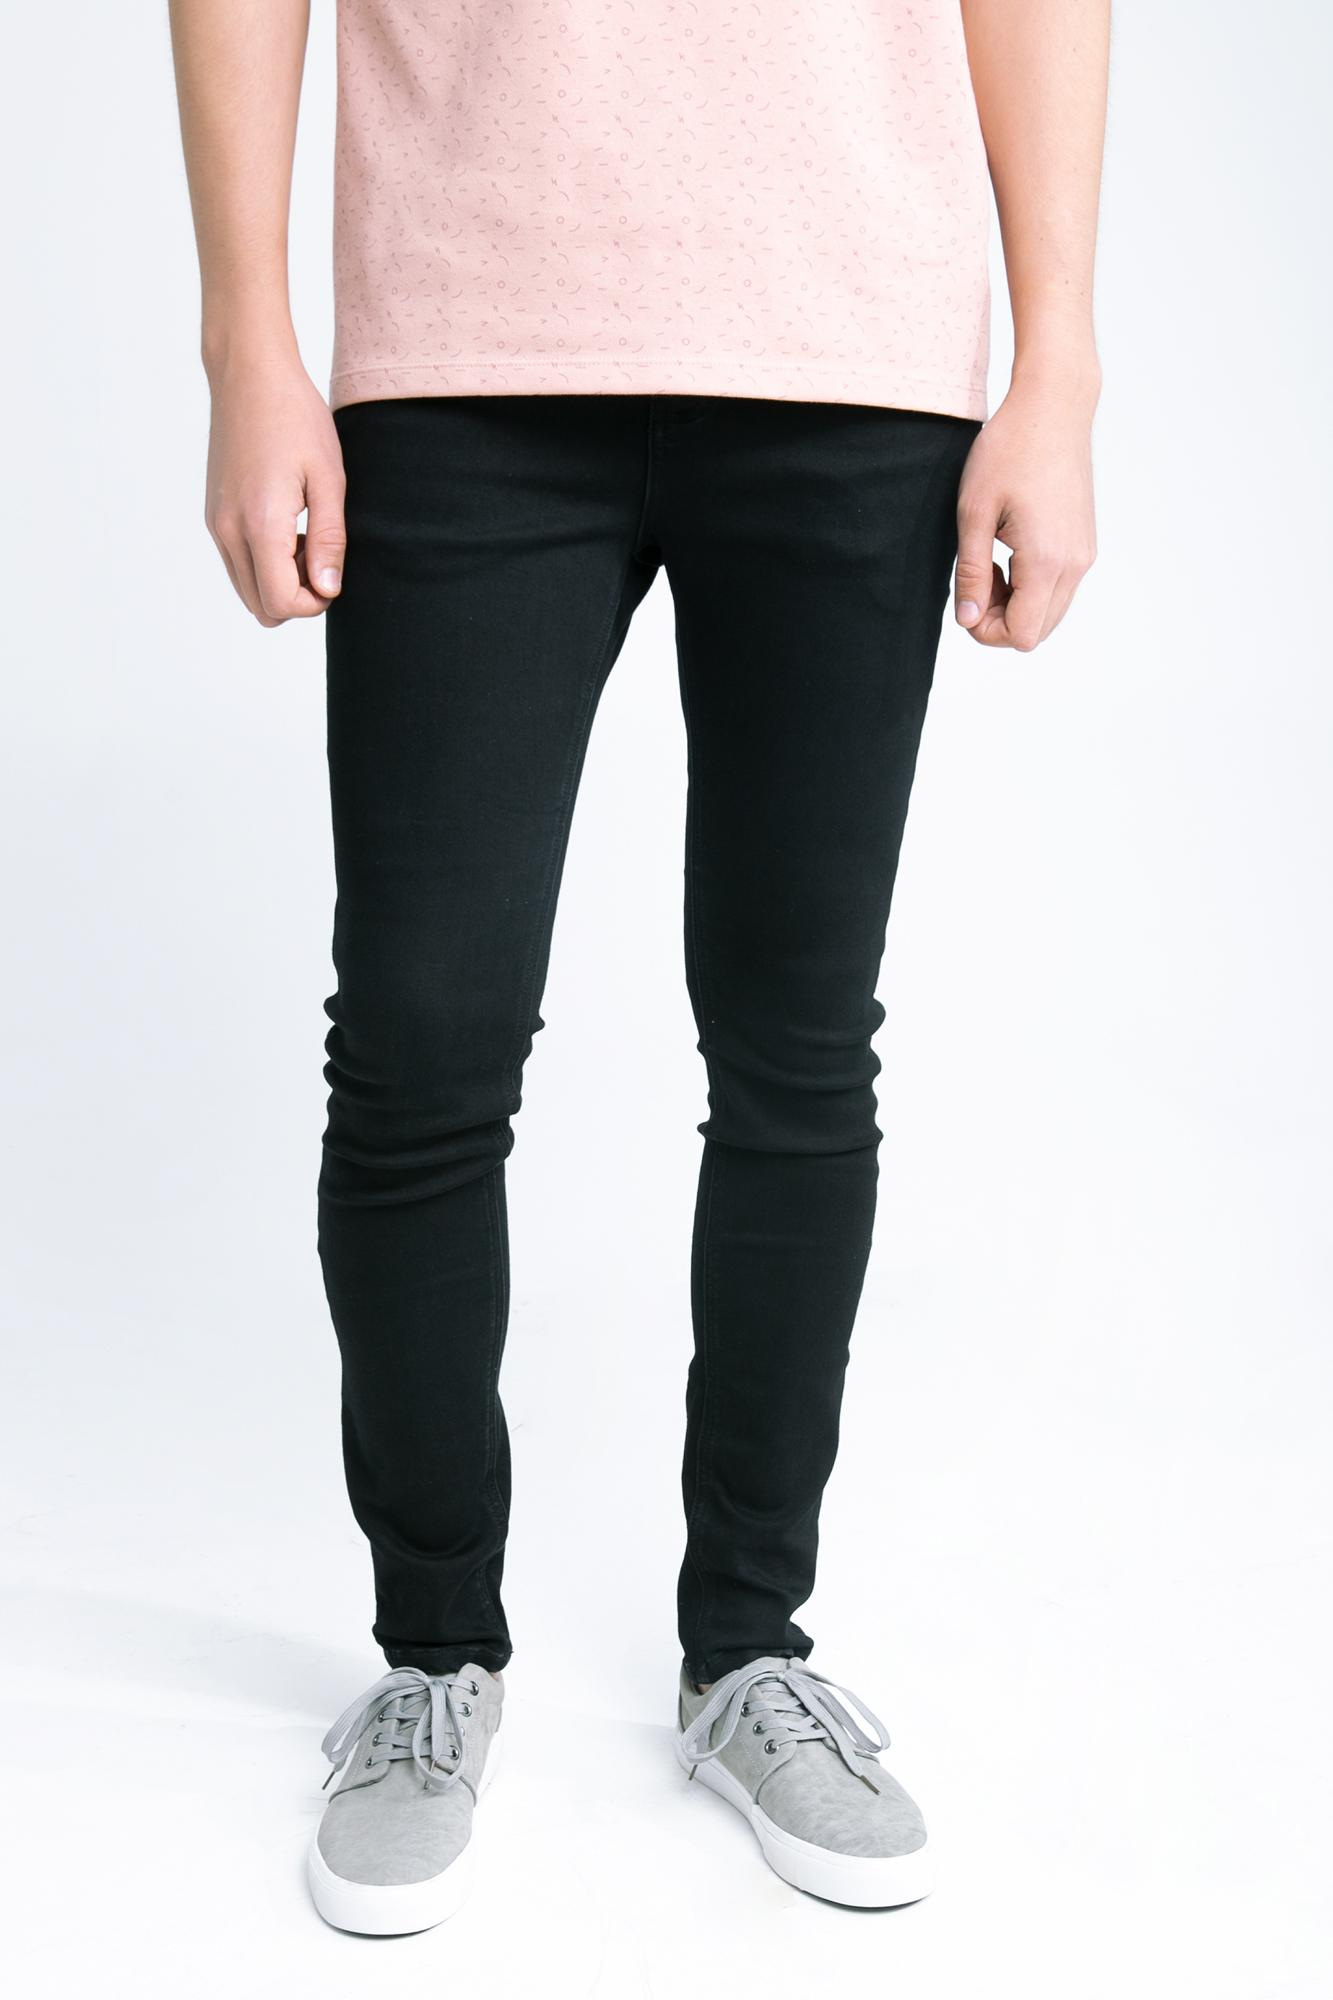 4038f0973ccf Jeans for Men for sale - Mens Jeans online brands, prices & reviews in  Philippines   Lazada.com.ph